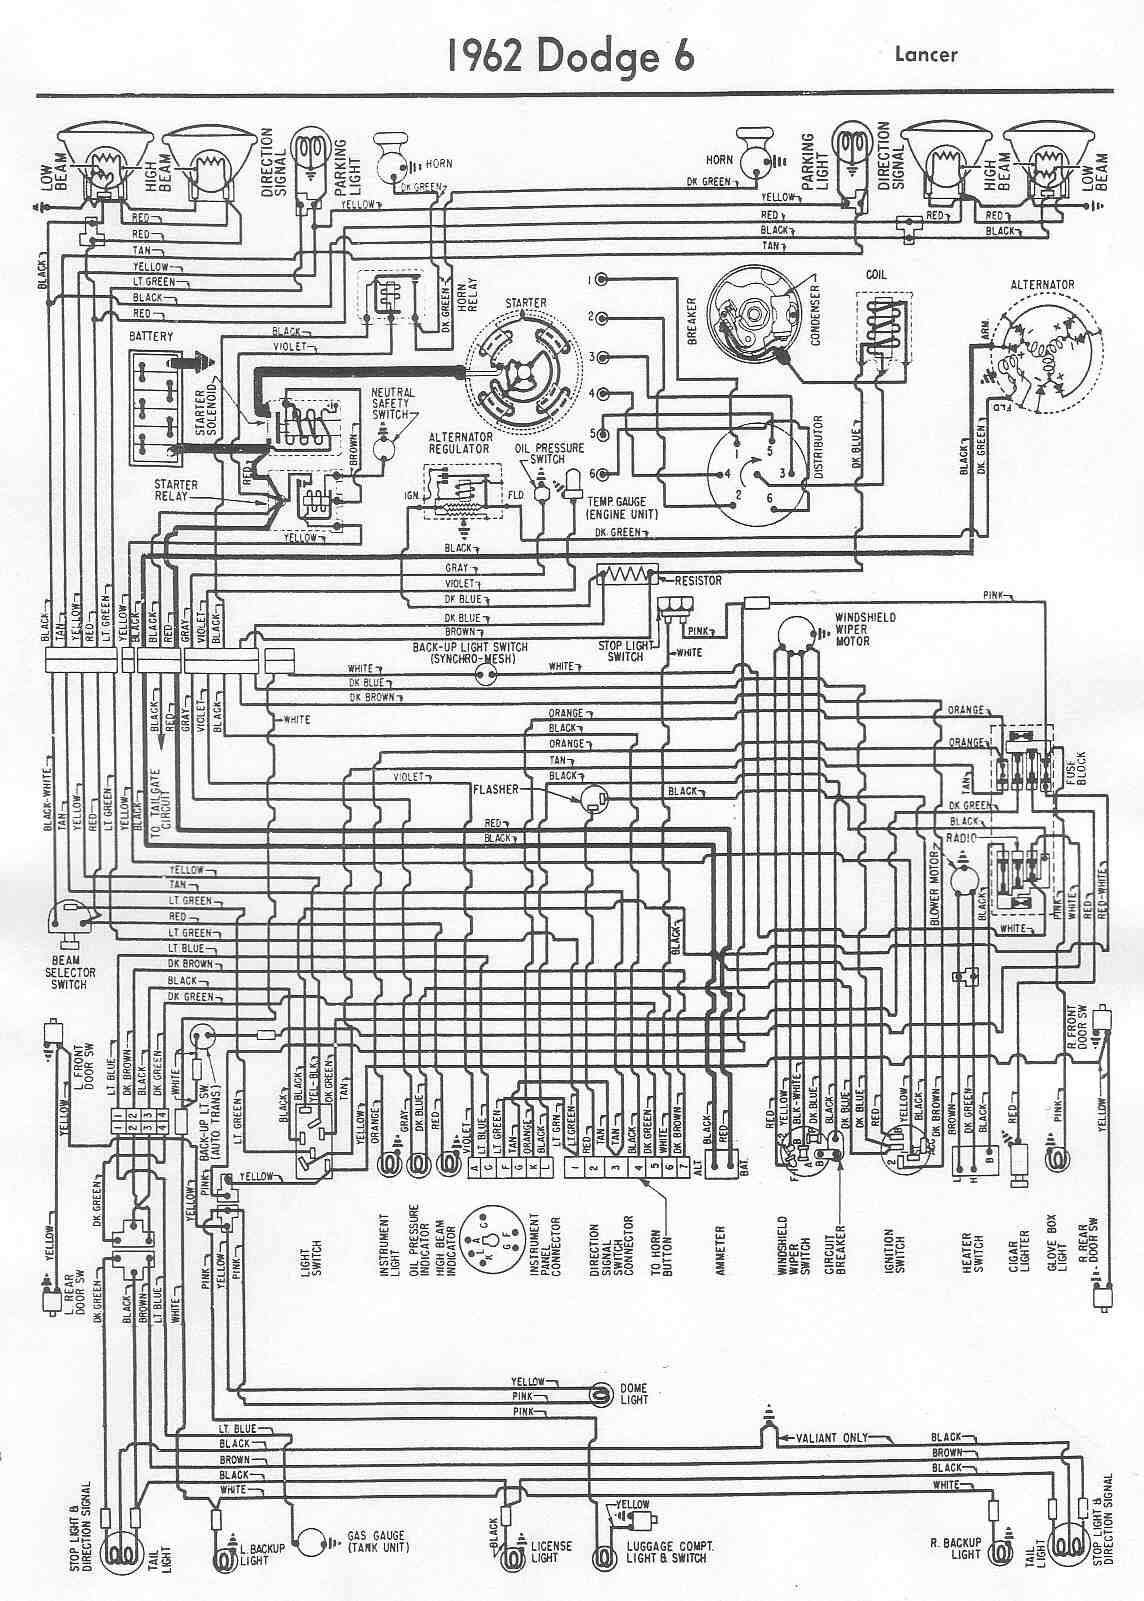 Dodge Car Manuals Wiring Diagrams Pdf Fault Codes Diagram 2000 Dually Download